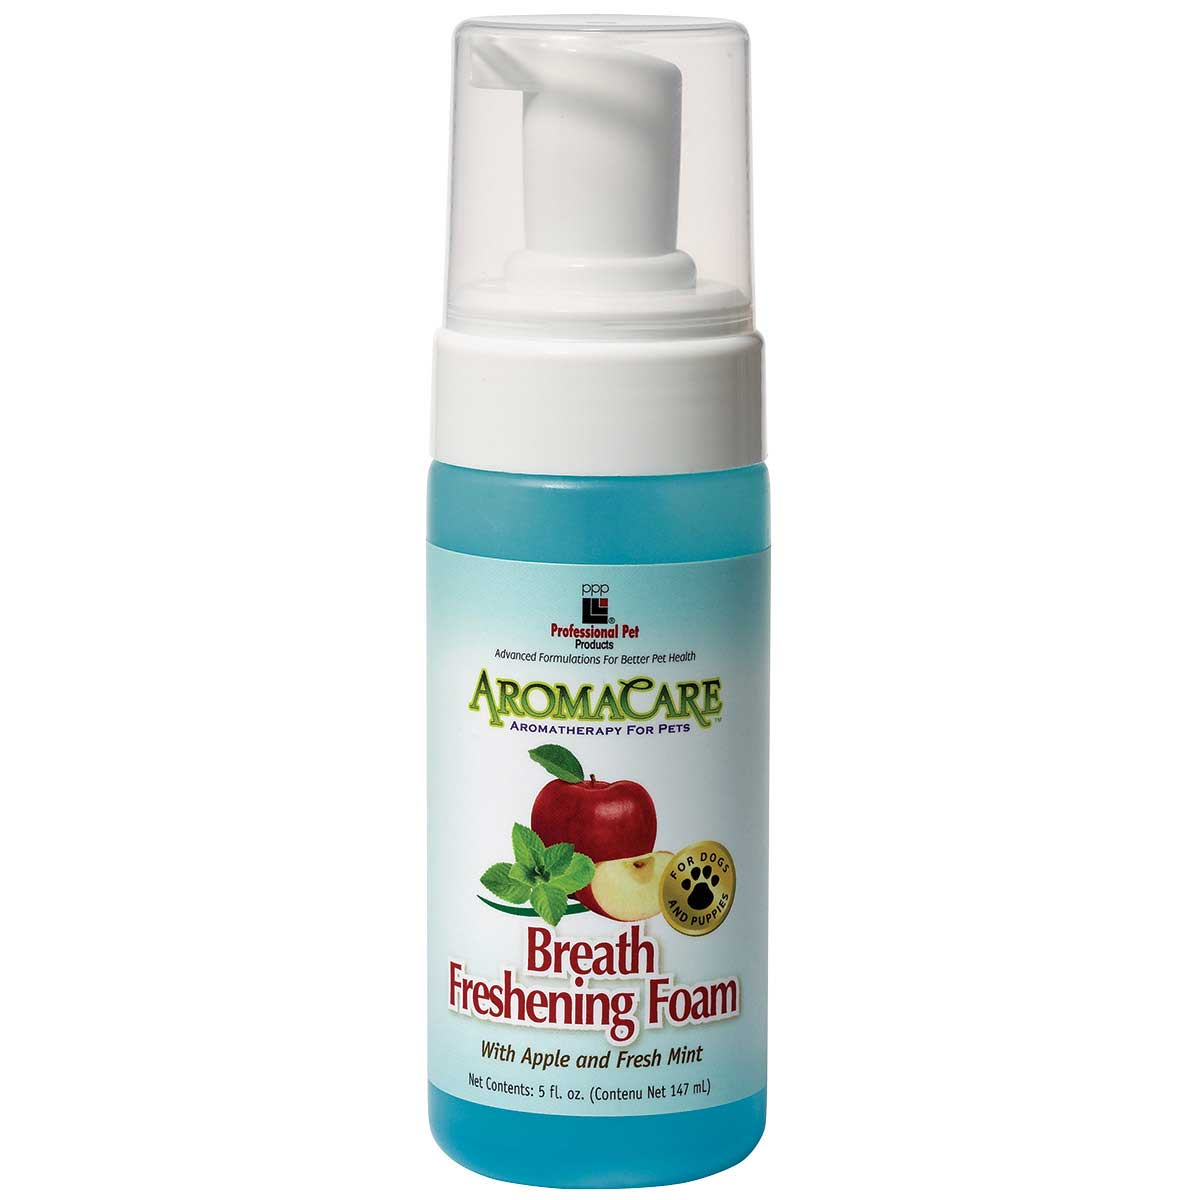 AromaCare Breath Freshening Foam for Dogs 5 oz